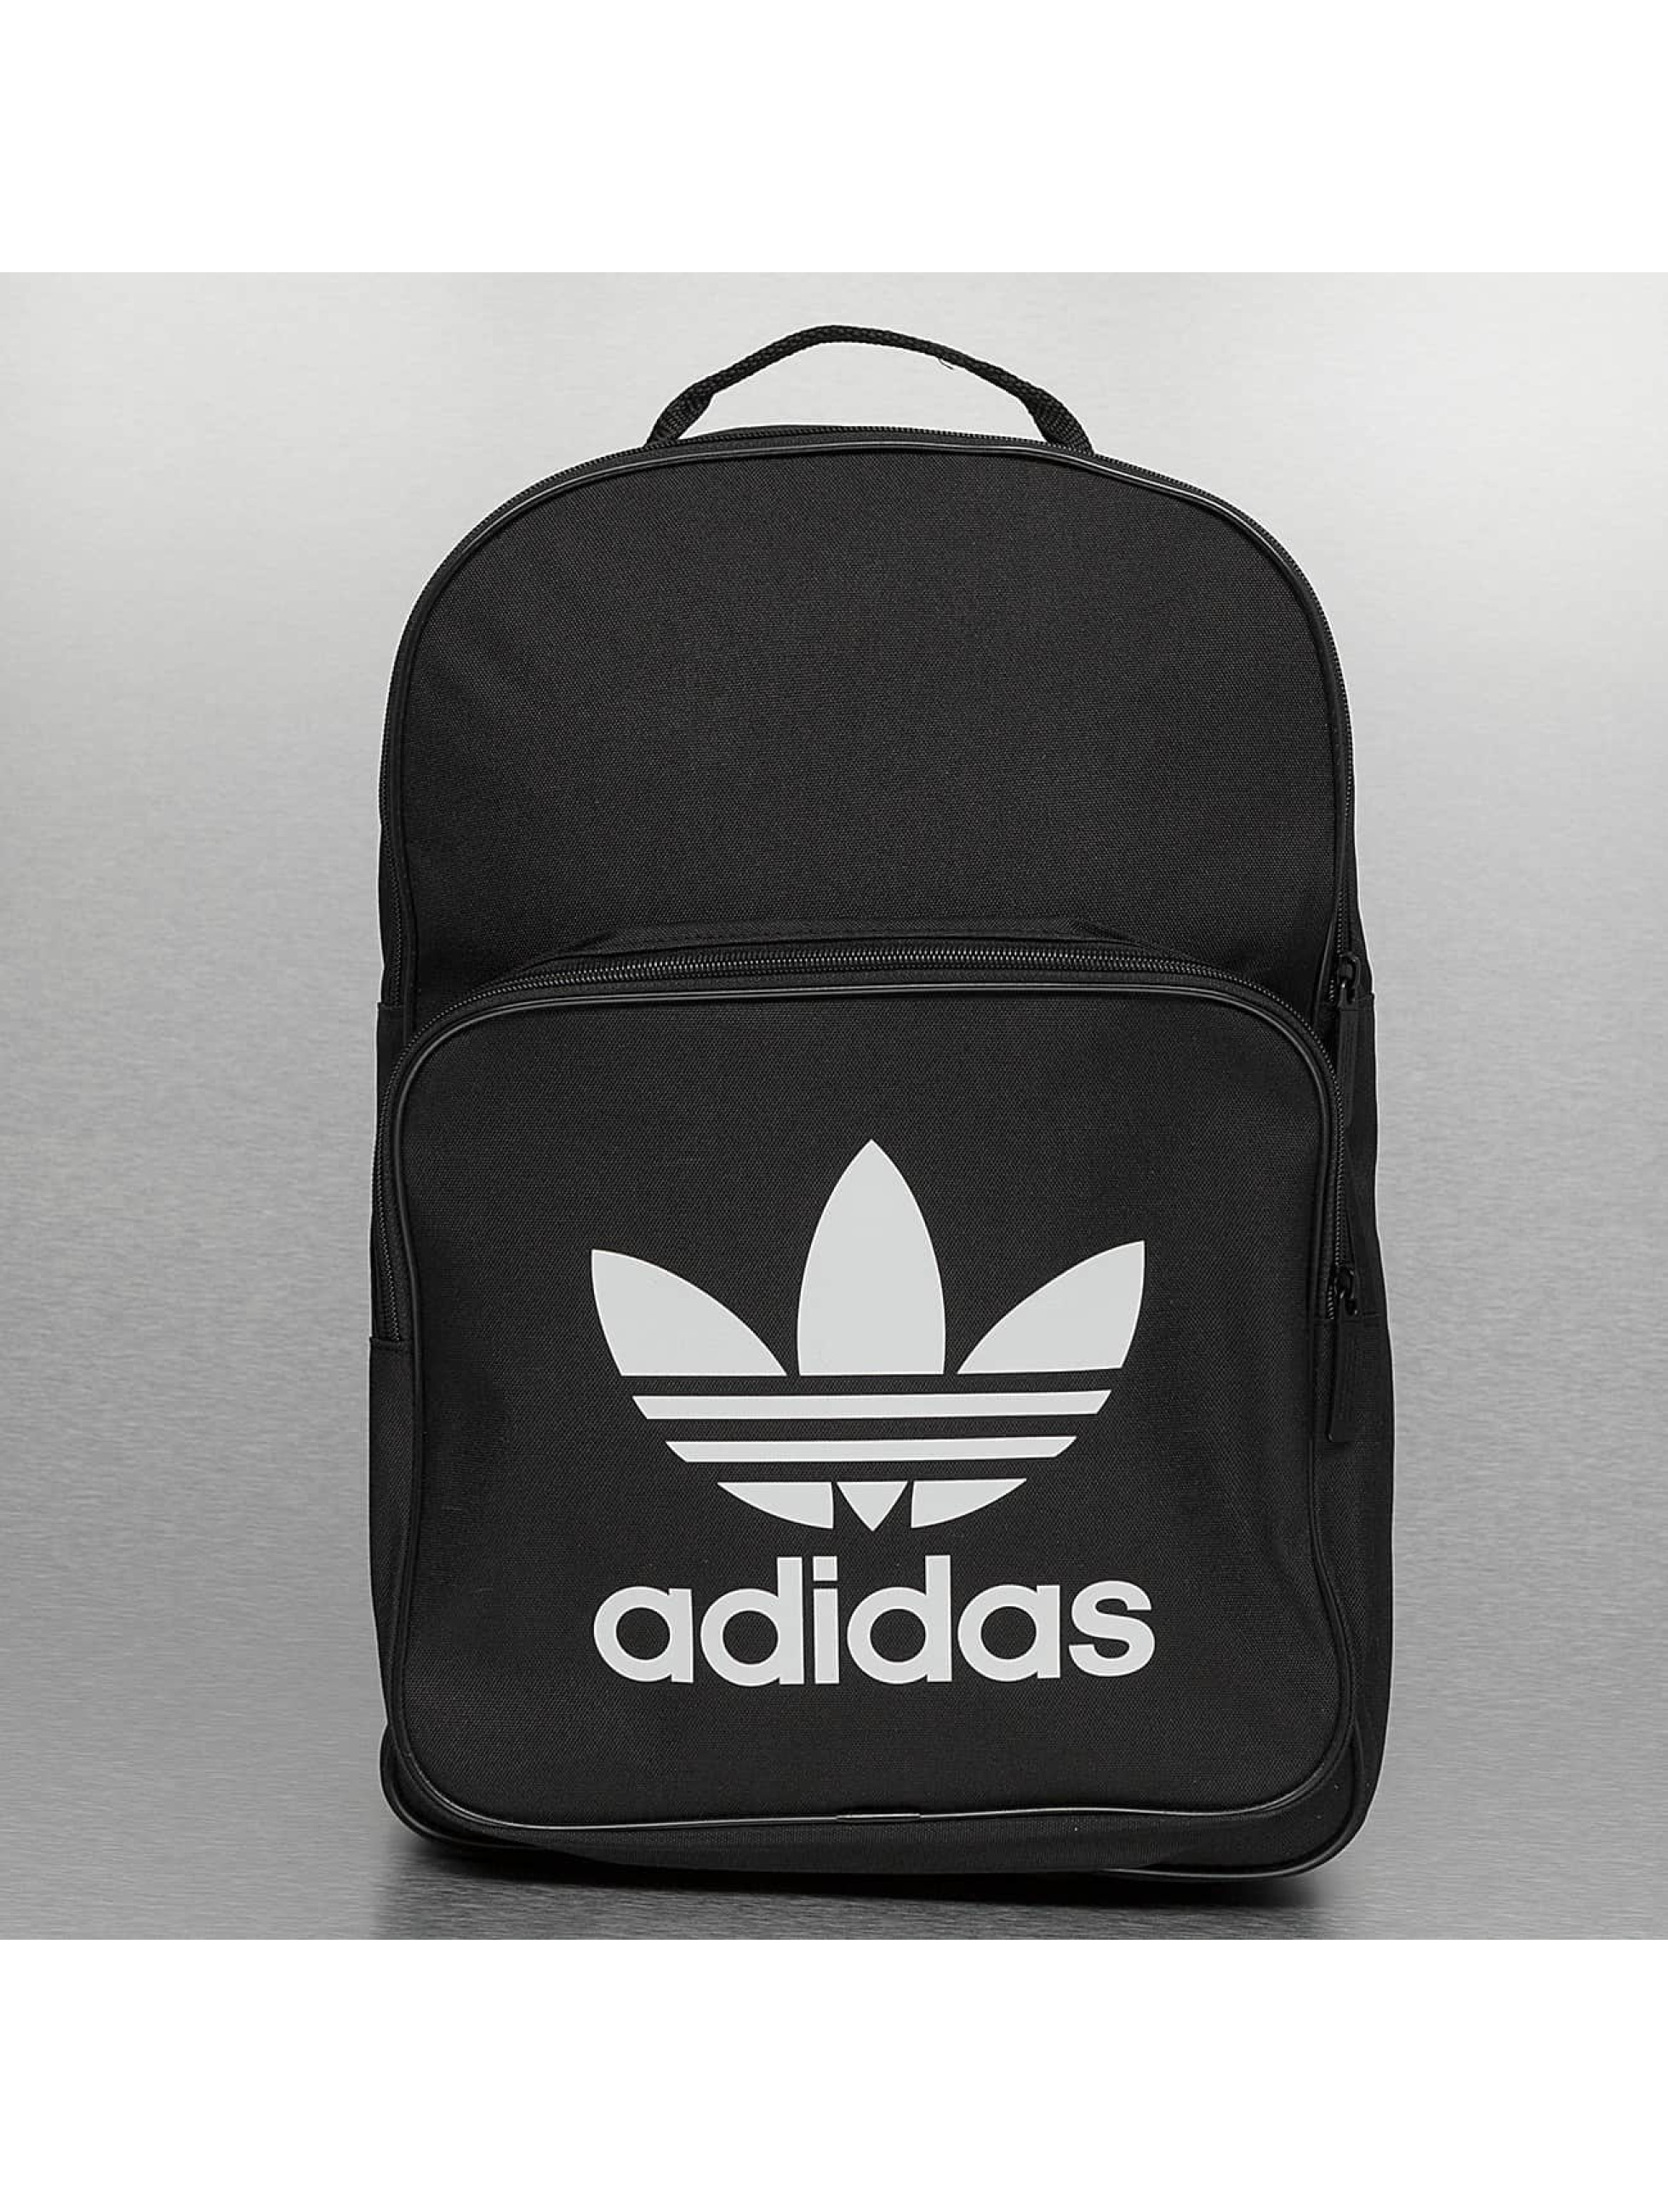 adidas herren accessoires rucksack classic trefoil ebay. Black Bedroom Furniture Sets. Home Design Ideas